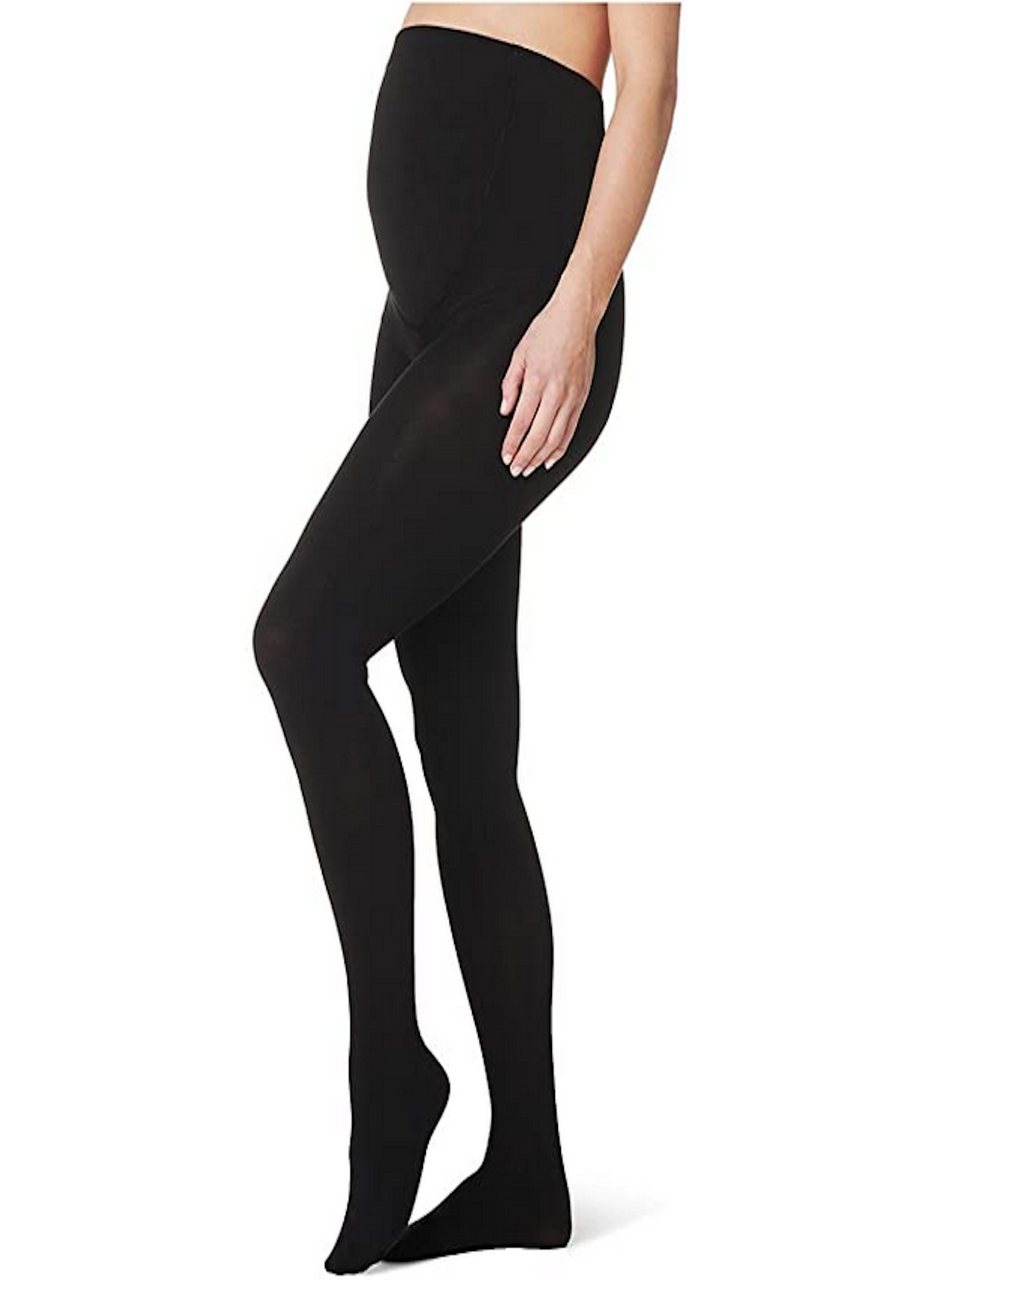 NOPPIES STRUMPFHOSE 60 DEN BLACK